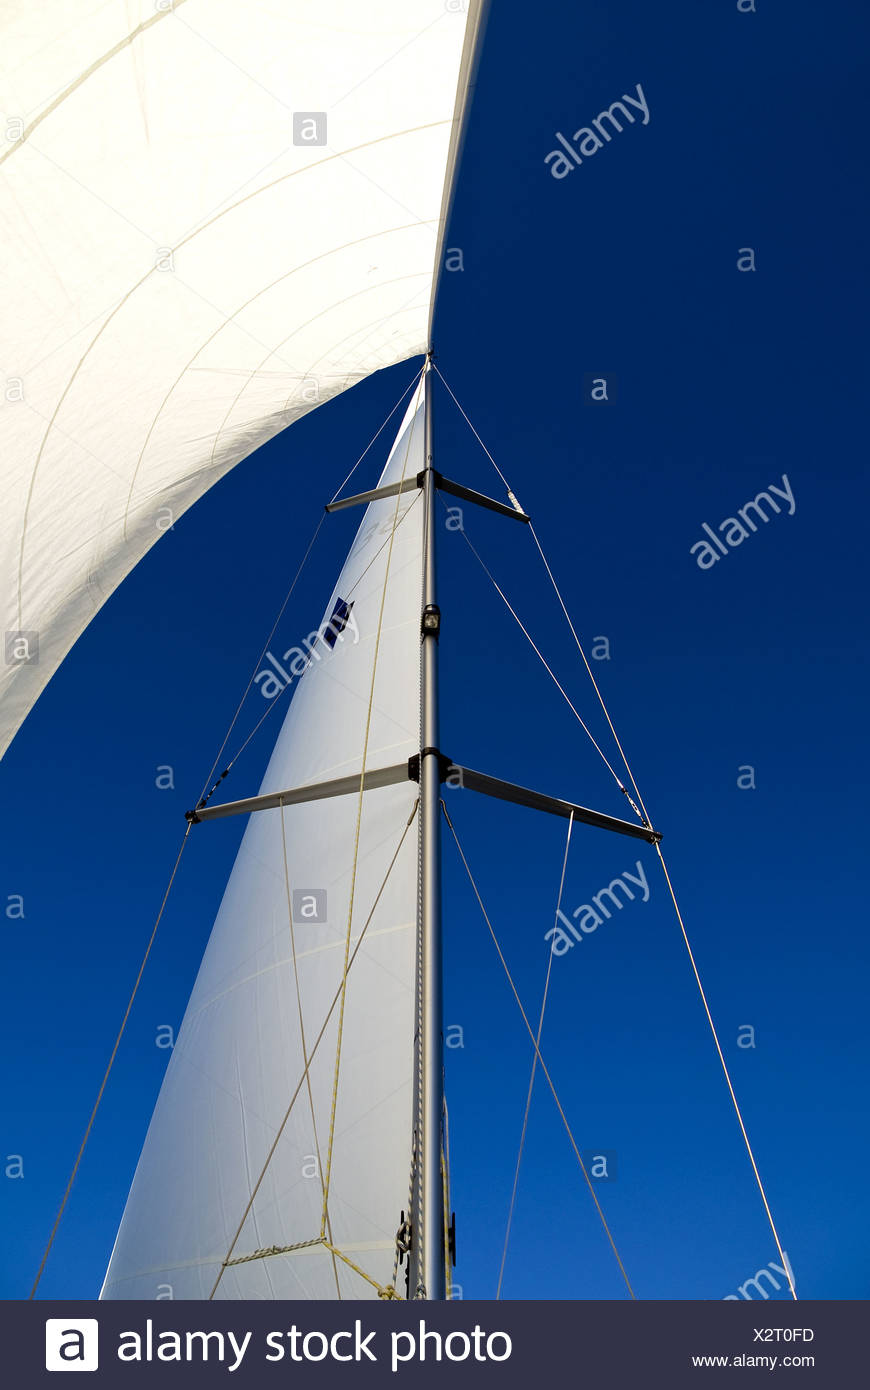 Sailing against a blue sky - Stock Image